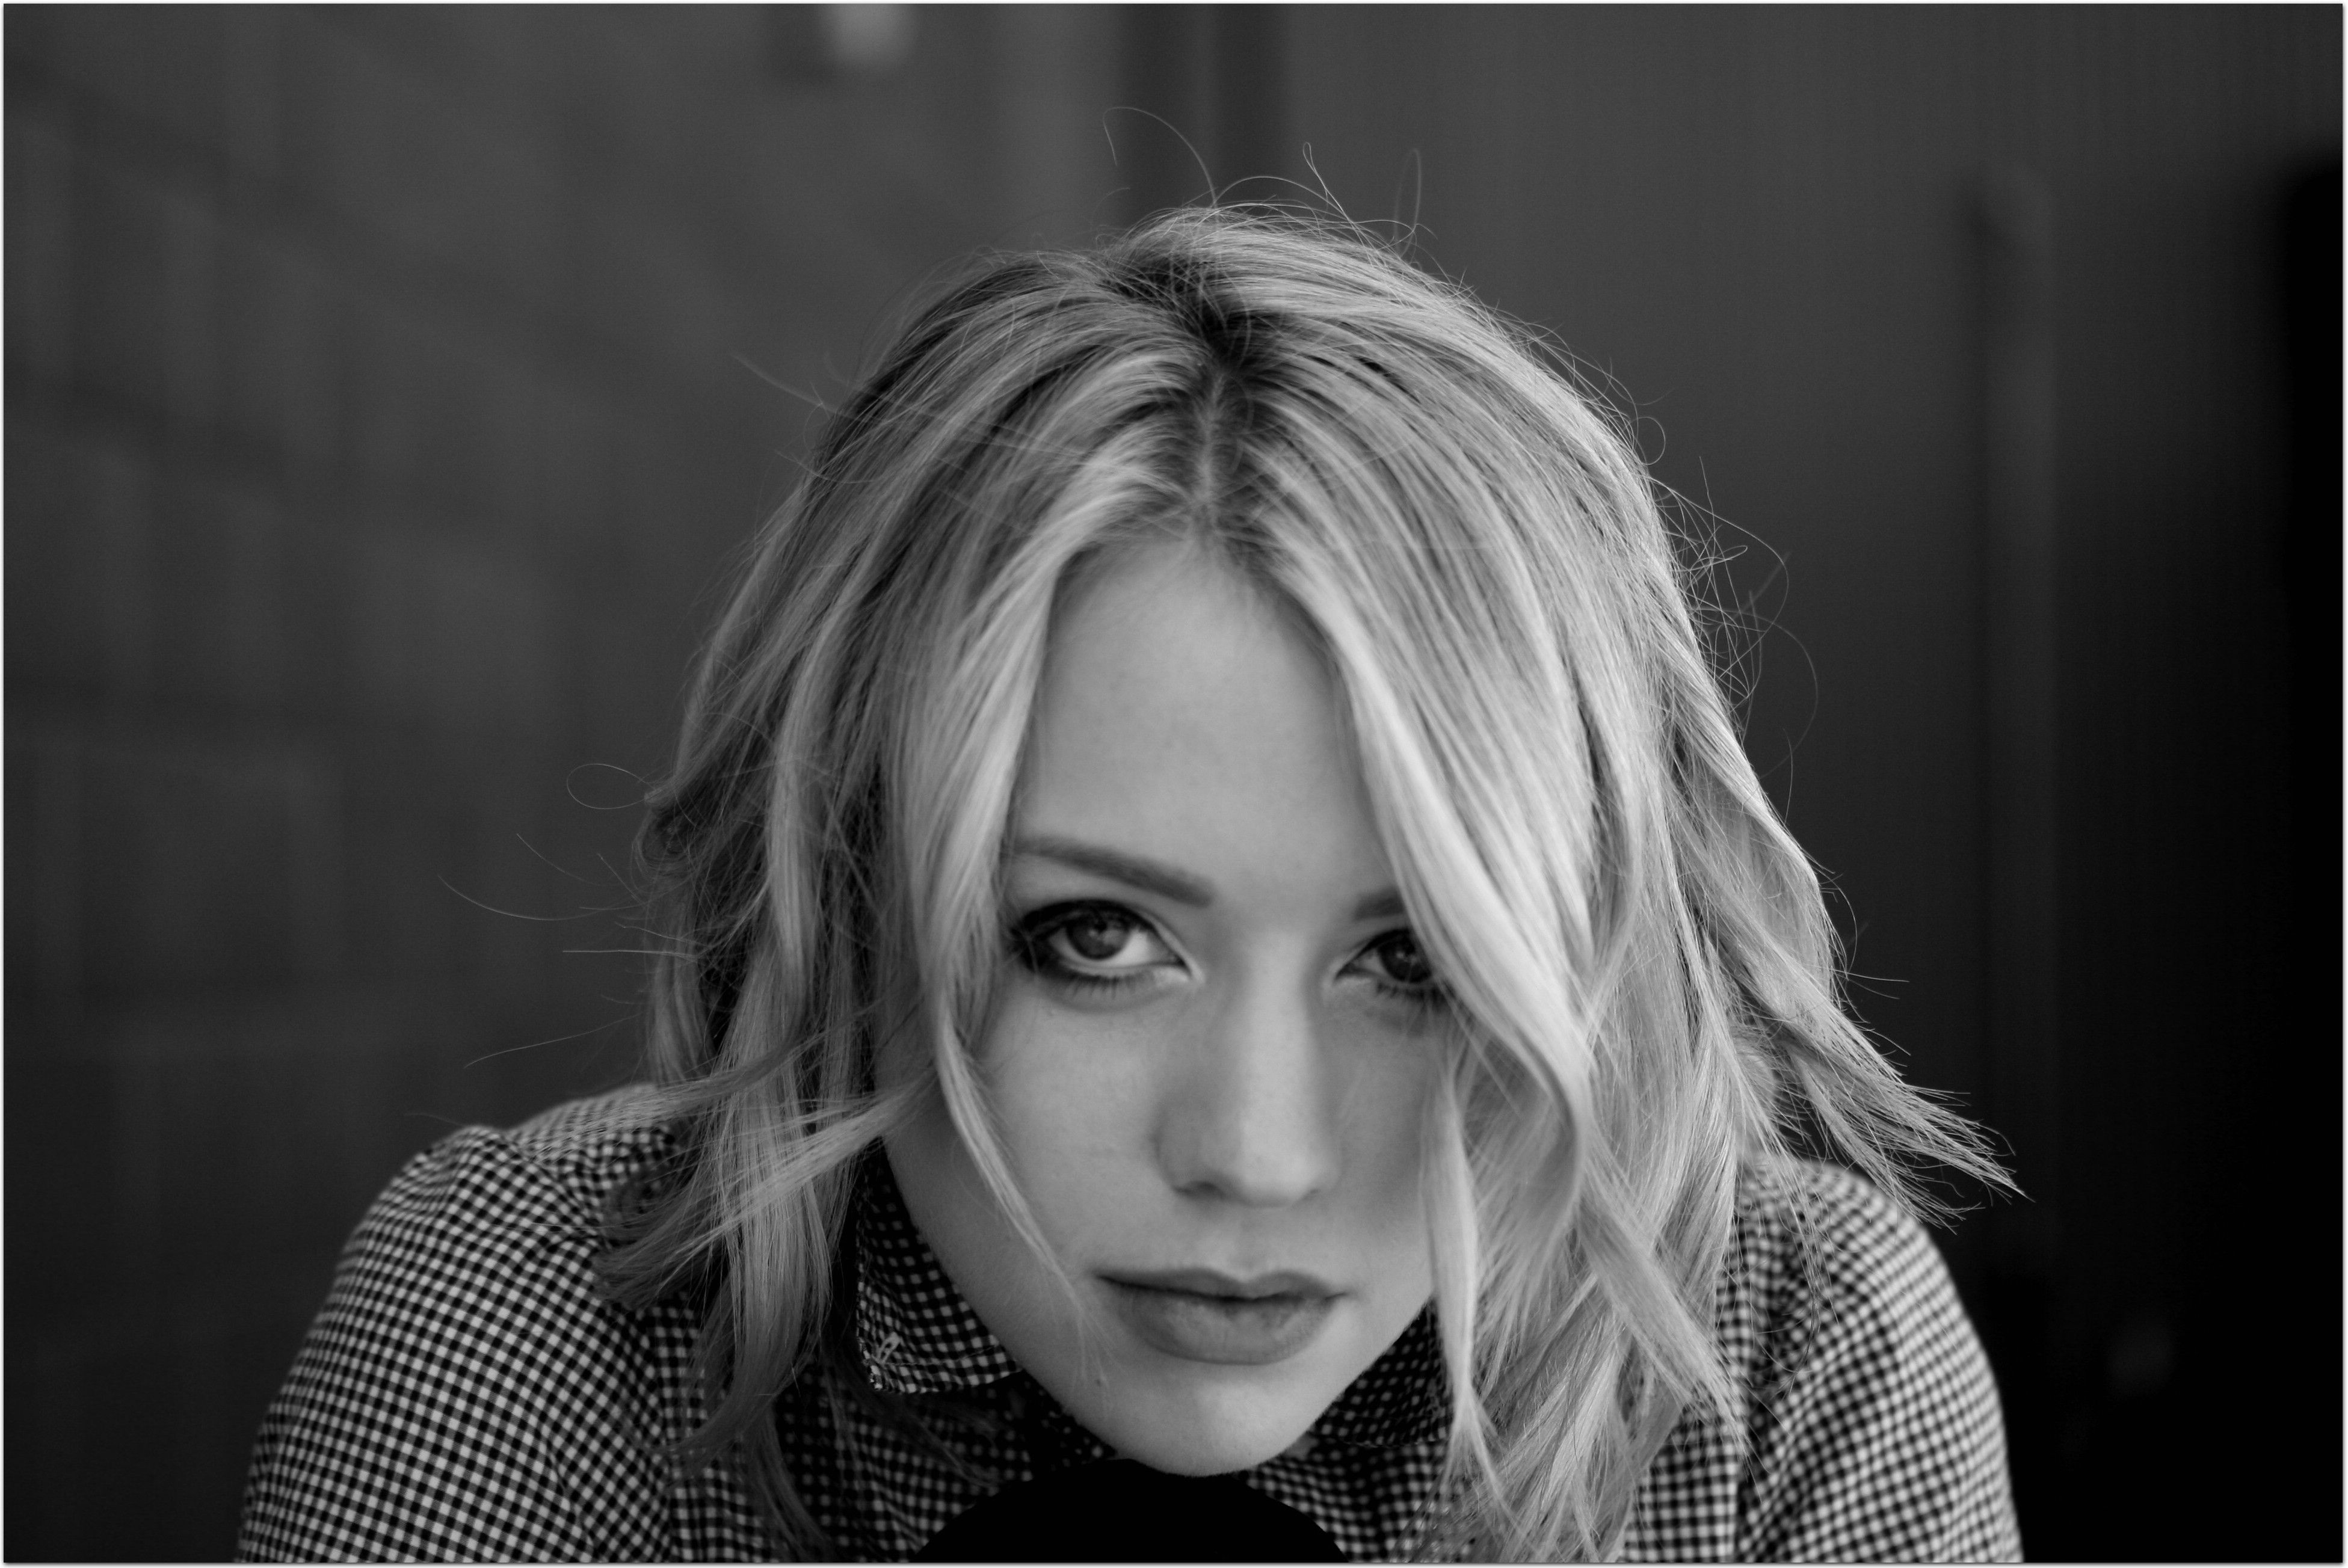 Alexz Johnson Background